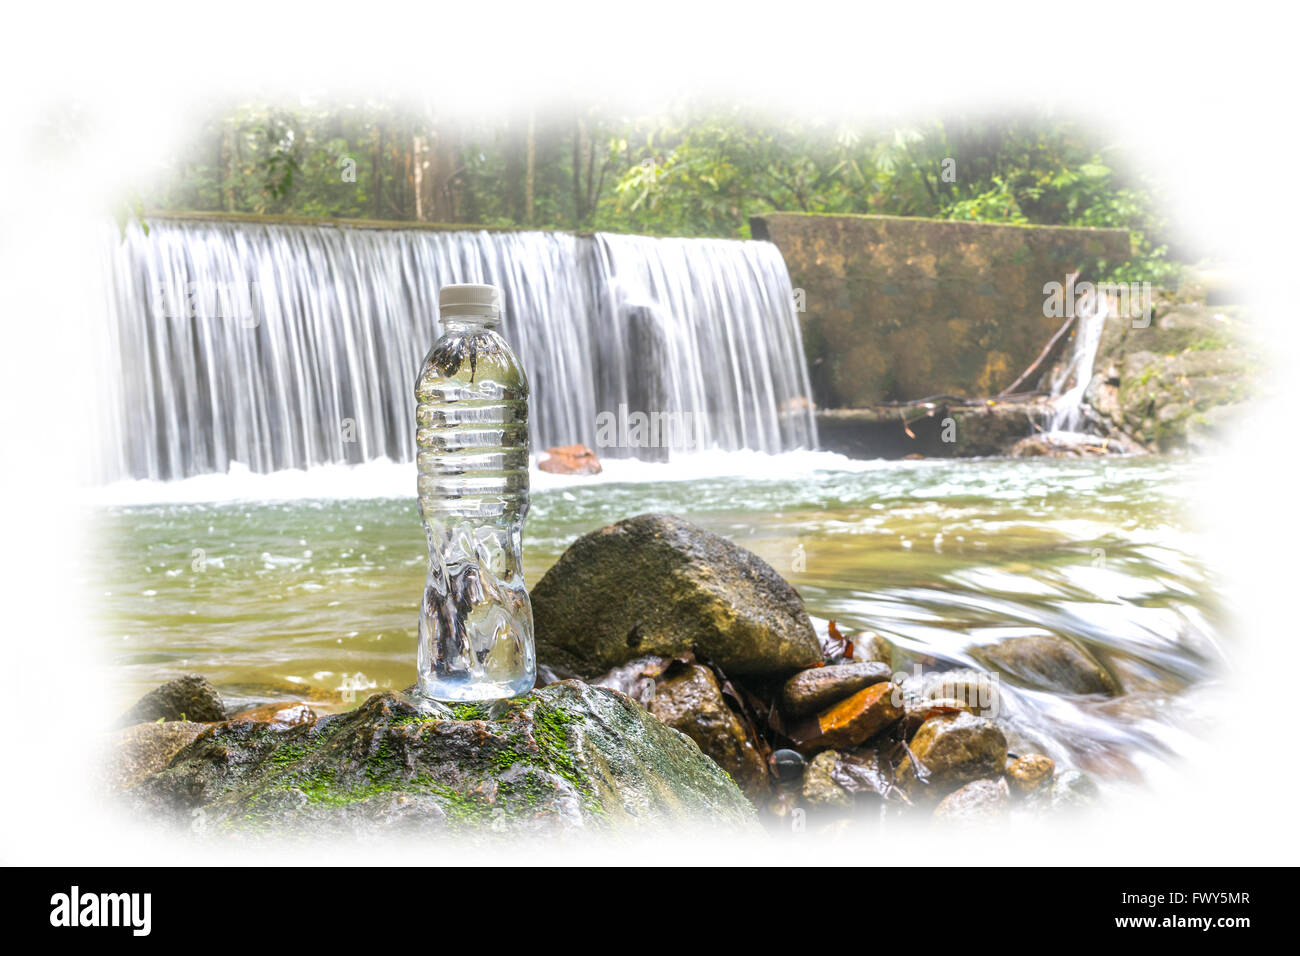 Plastic bottle with waterfall background at tropical forest - Stock Image